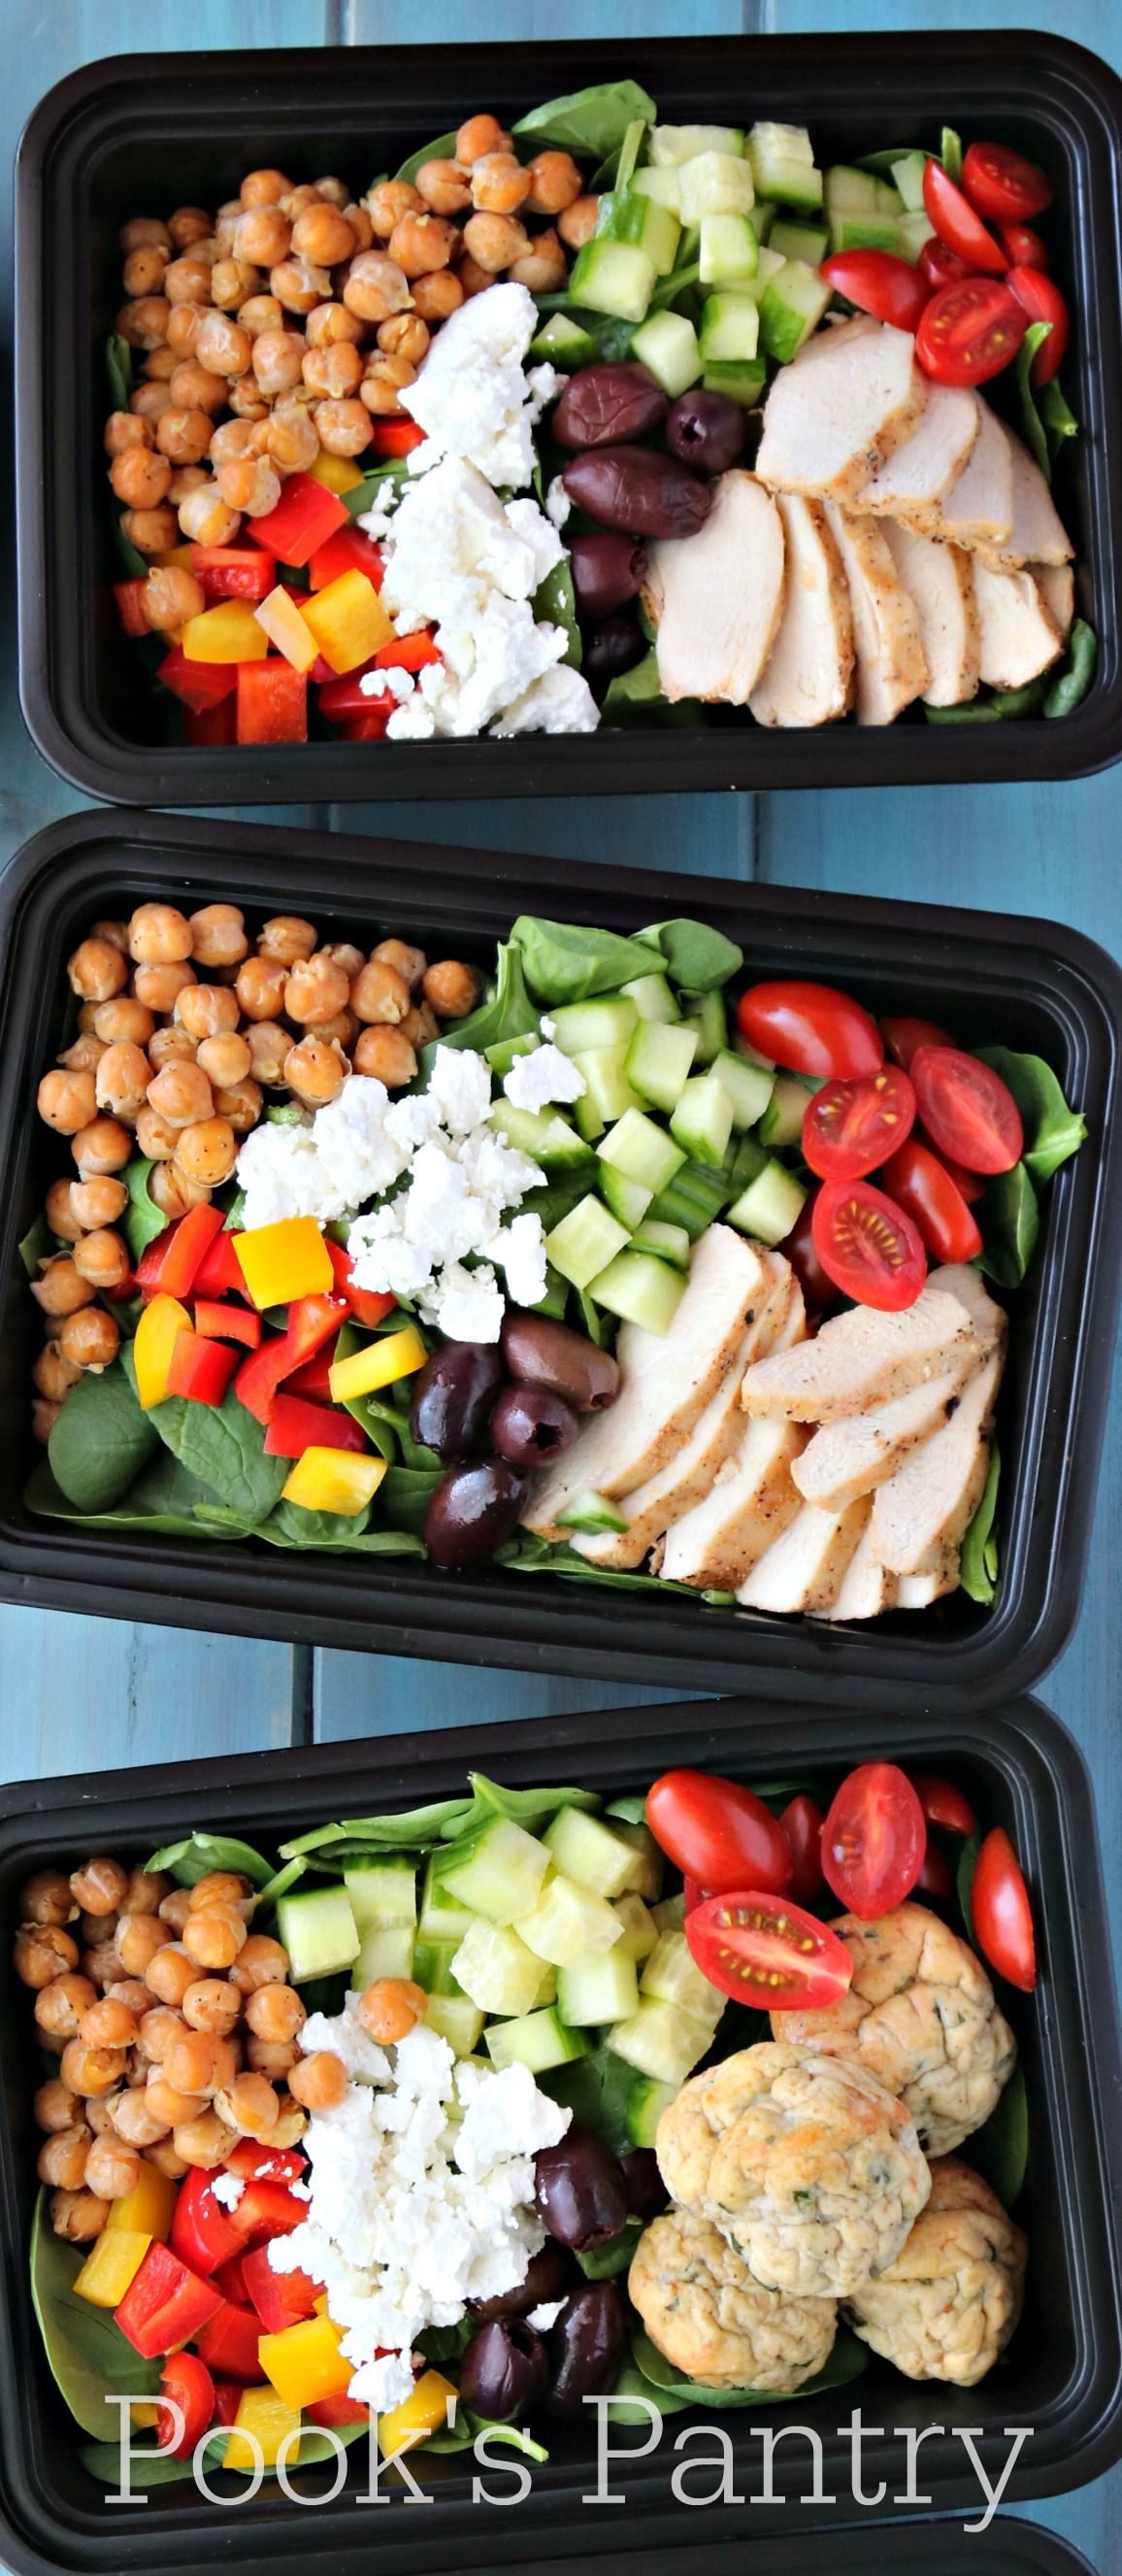 Photo of 25+ Healthy Meal Prep Ideas